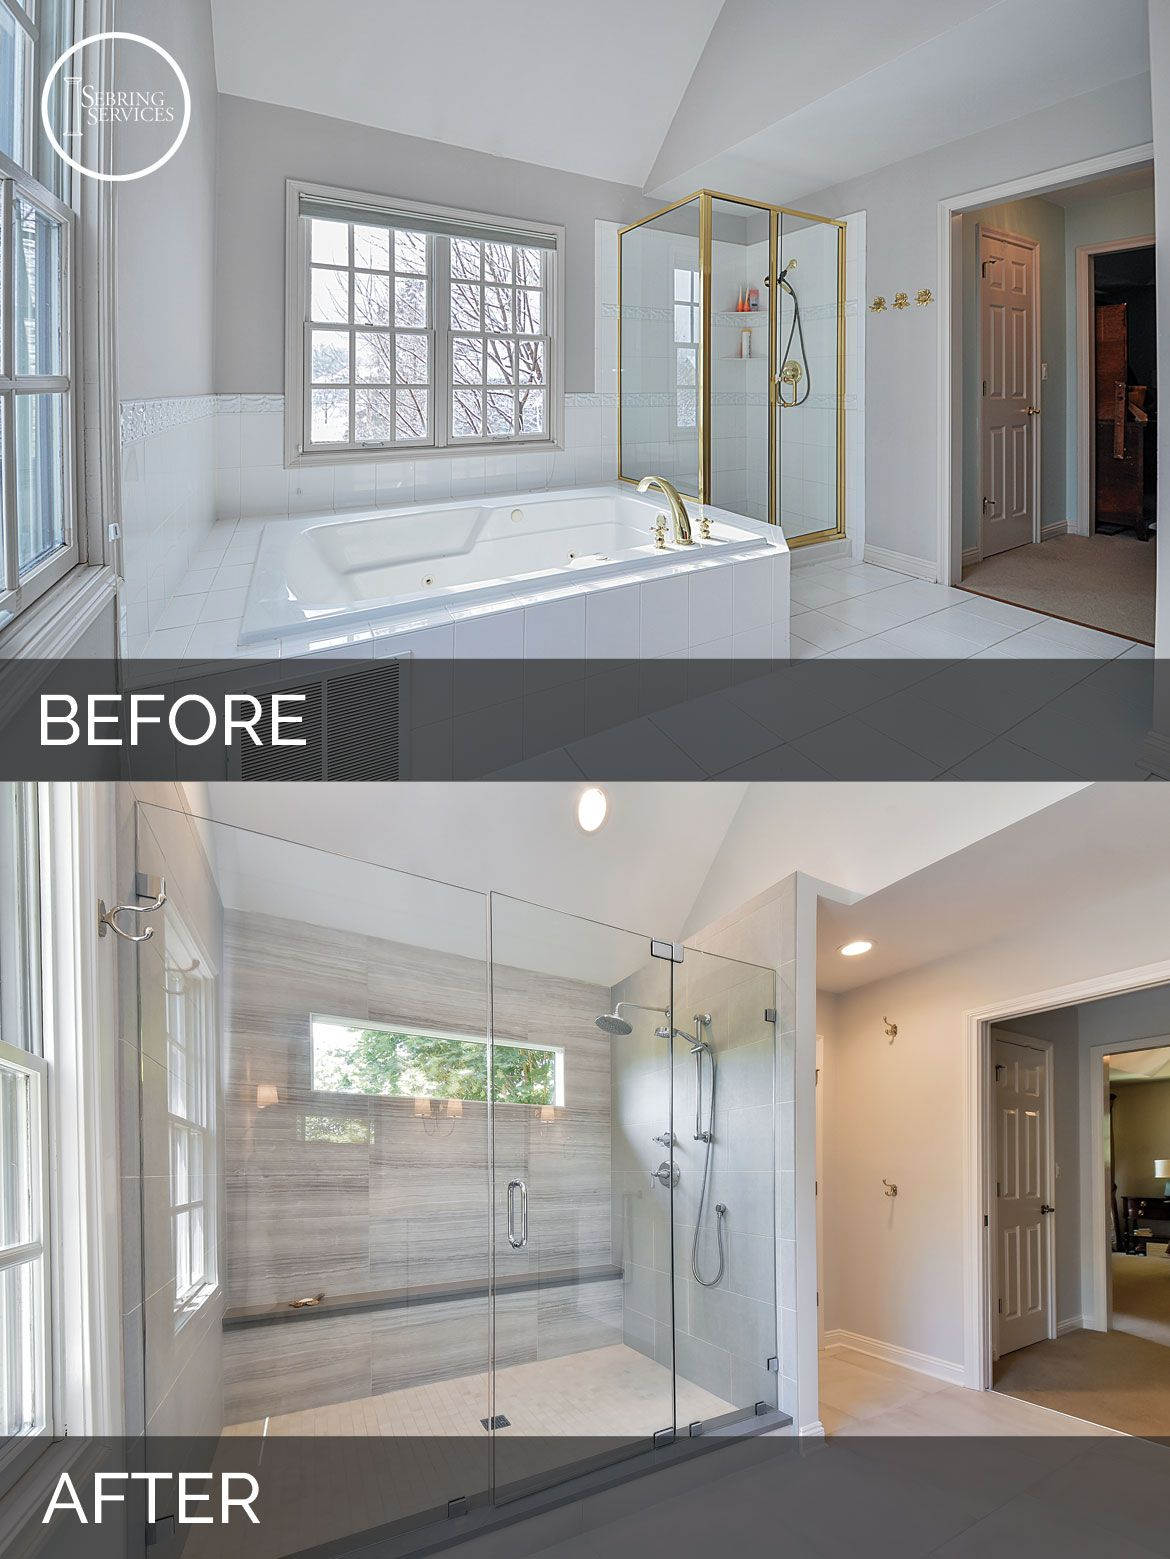 carl & susan's master bath before & after pictures | master bathrooms